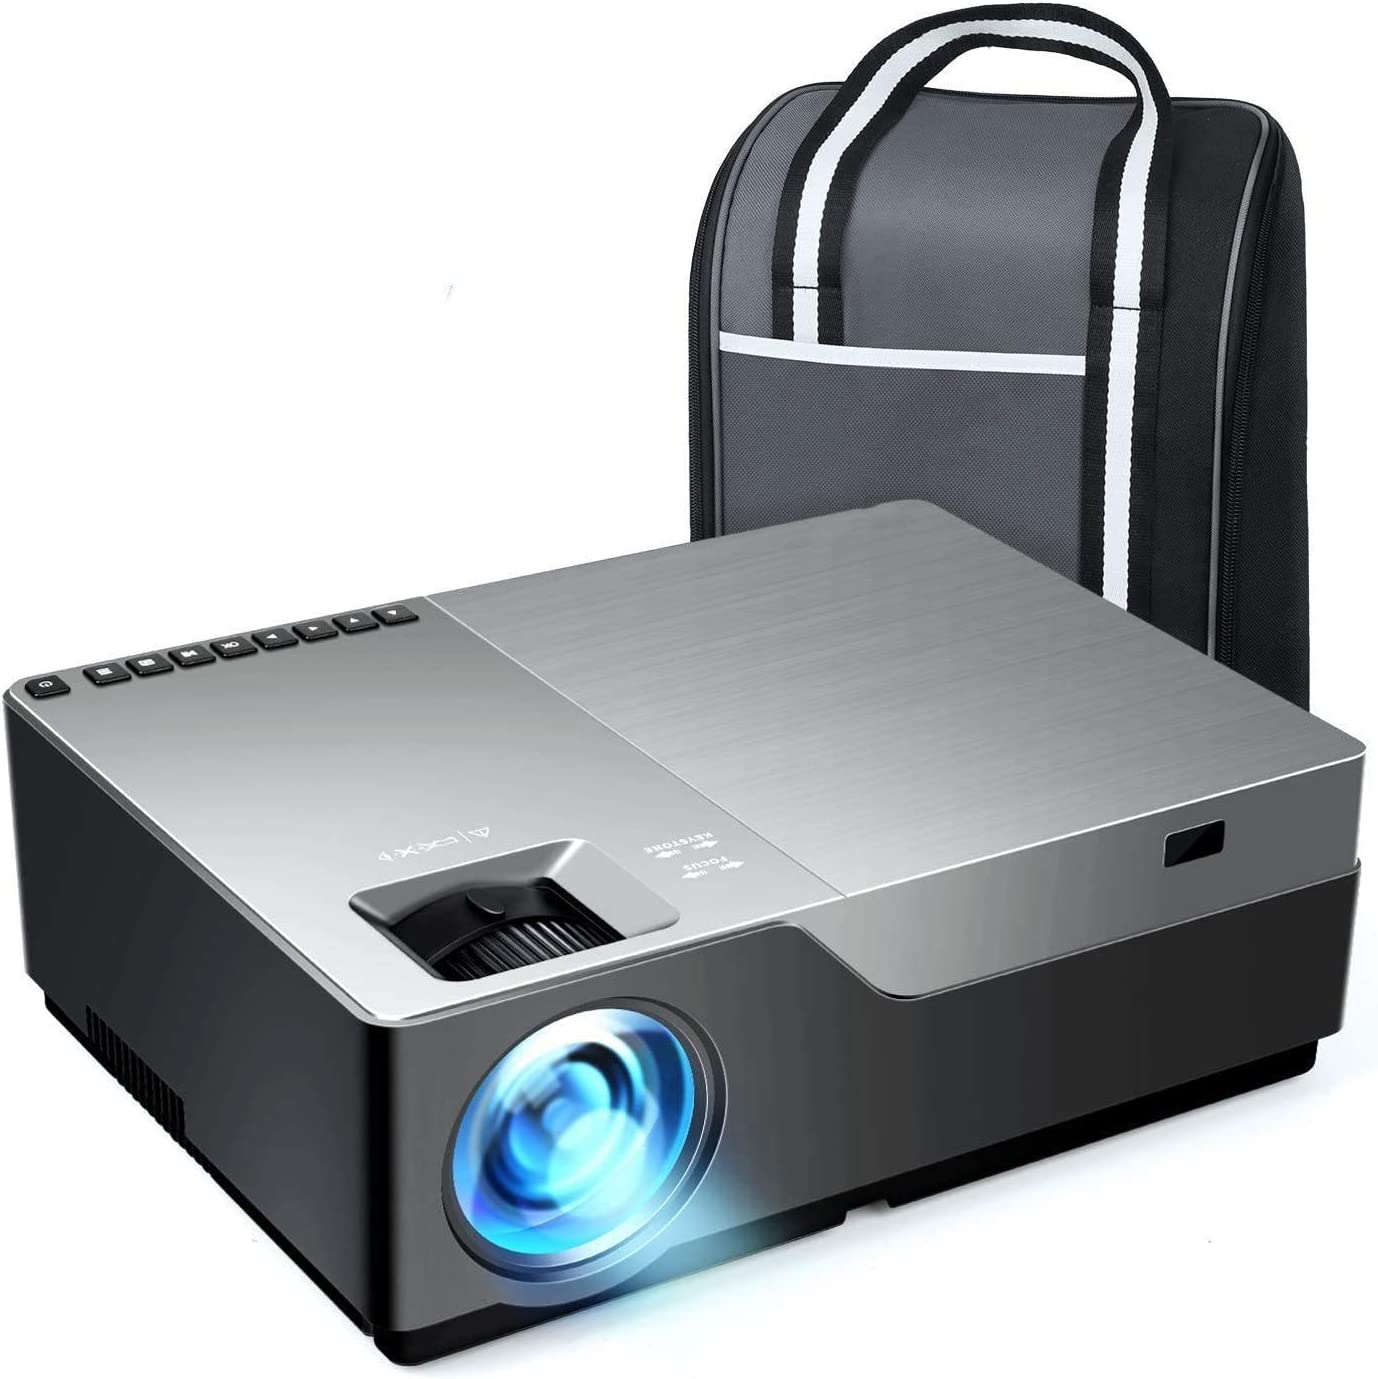 Video Projector SWT-19 Home Theater Video Projector Compatible with TV Stick, PS4, HDMI, TF, AV, USB for Home Entertainment